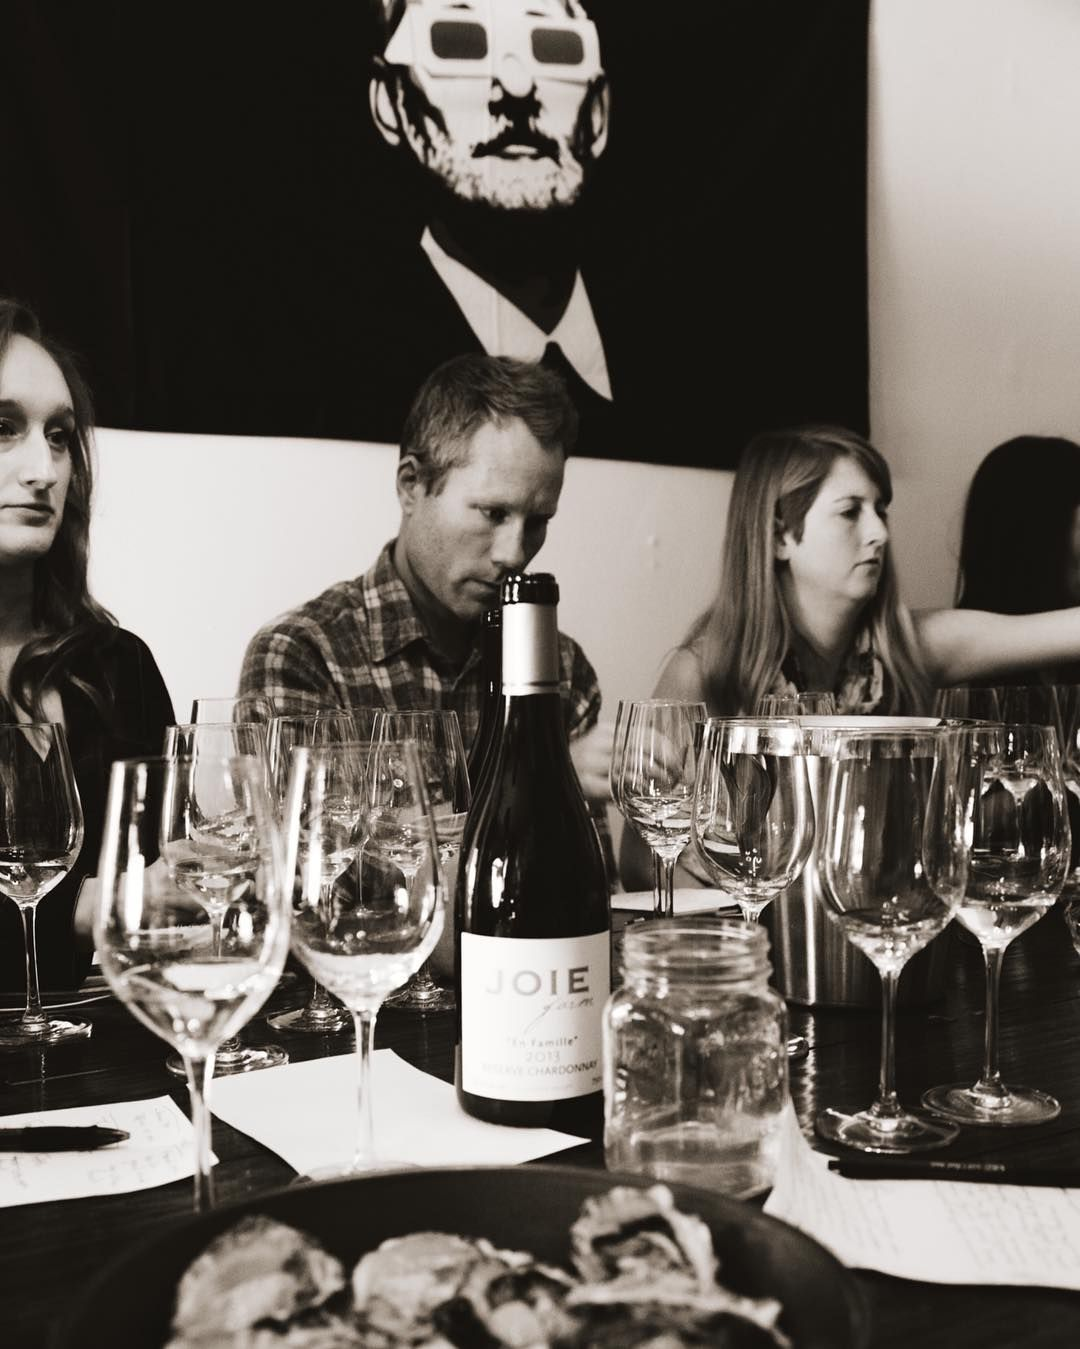 @joiefarm team Chardonnay blind tasting Karl seems to be smelling straight from the bottle #billmurray observes thru 3D glasses - all about the #joiedefarm